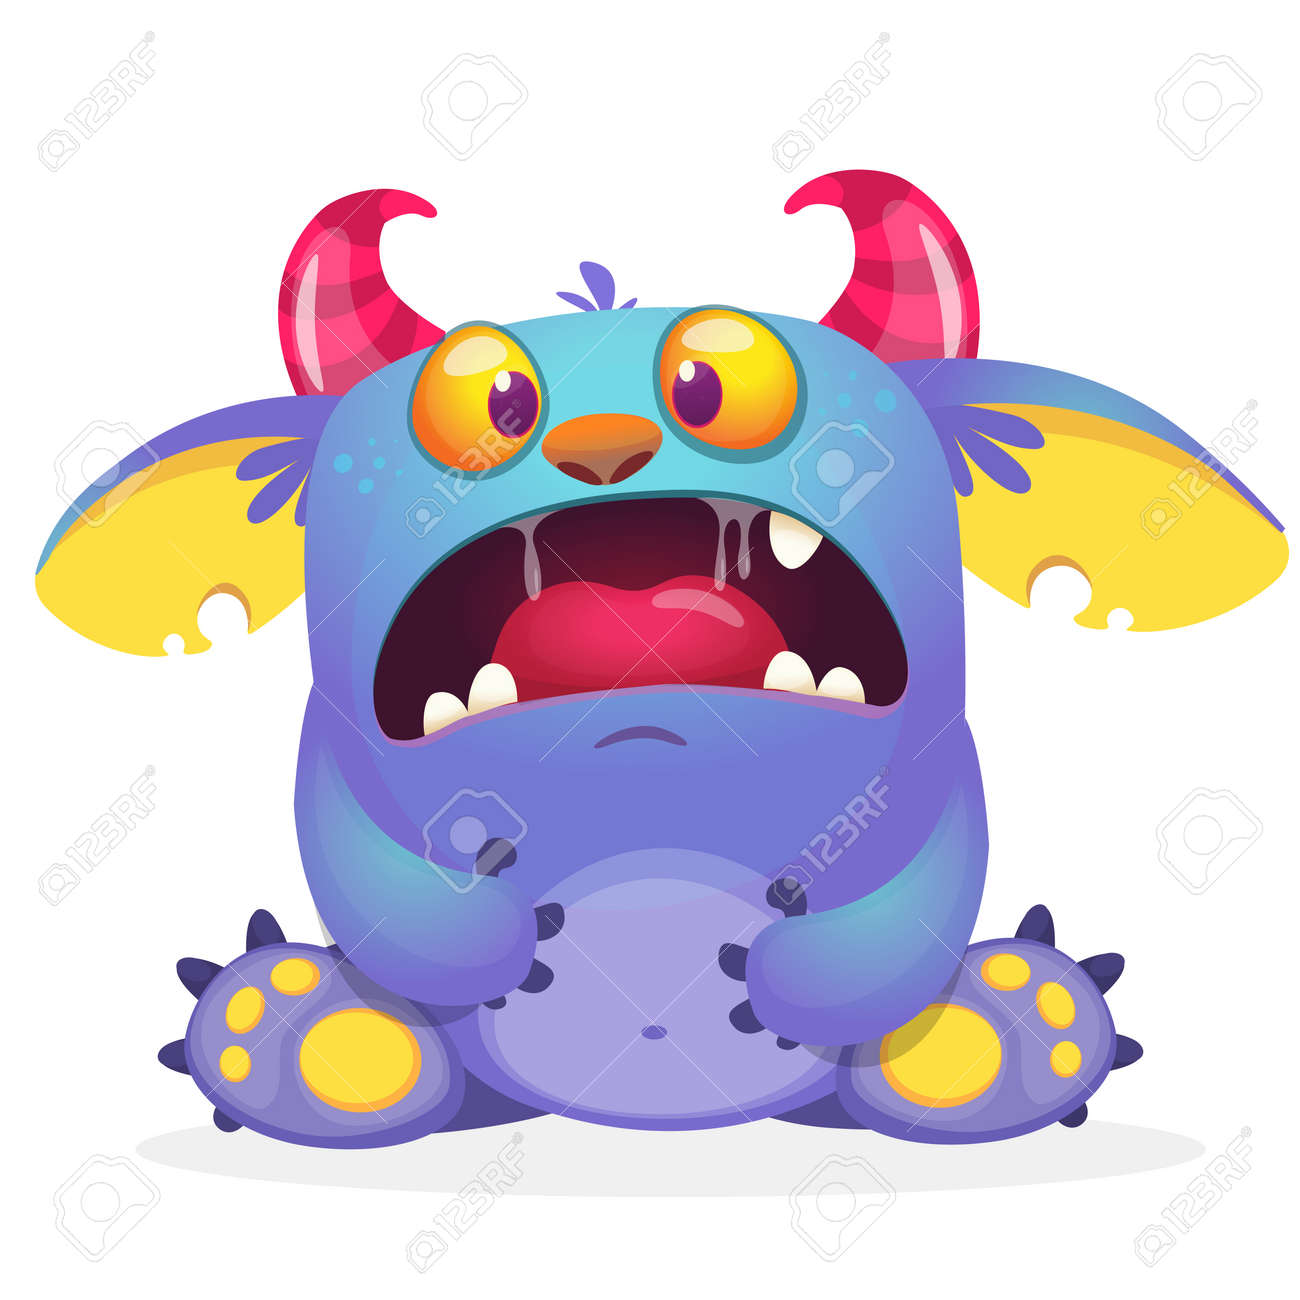 Scary cartoon monster creature. Vector illustration of angry monster. - 154691022